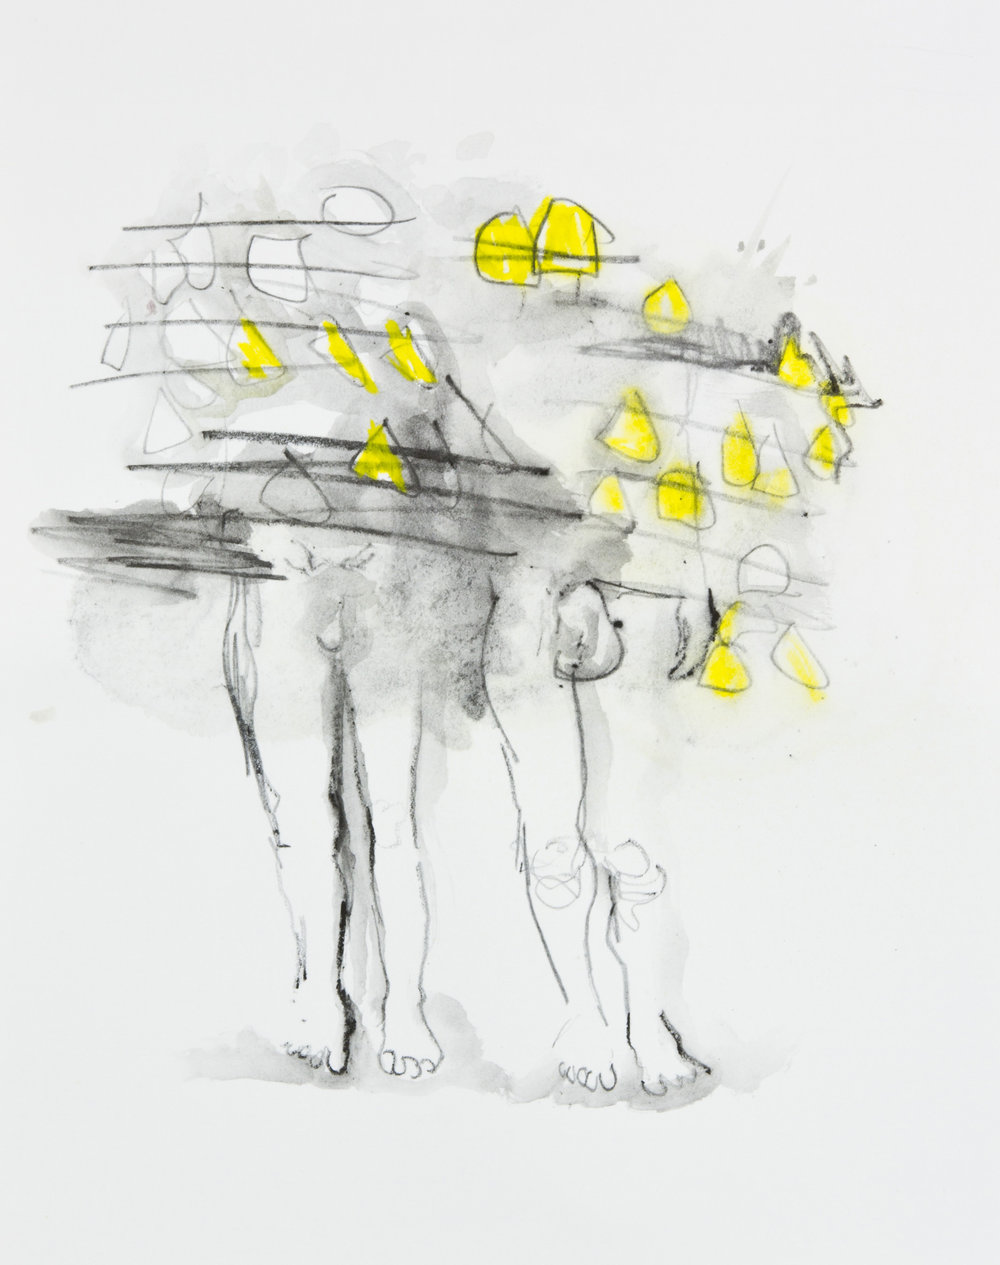 Yellow Creeping Around And In, 2013, graphite, crayon and watercolor pencil on paper, 11x14 inches